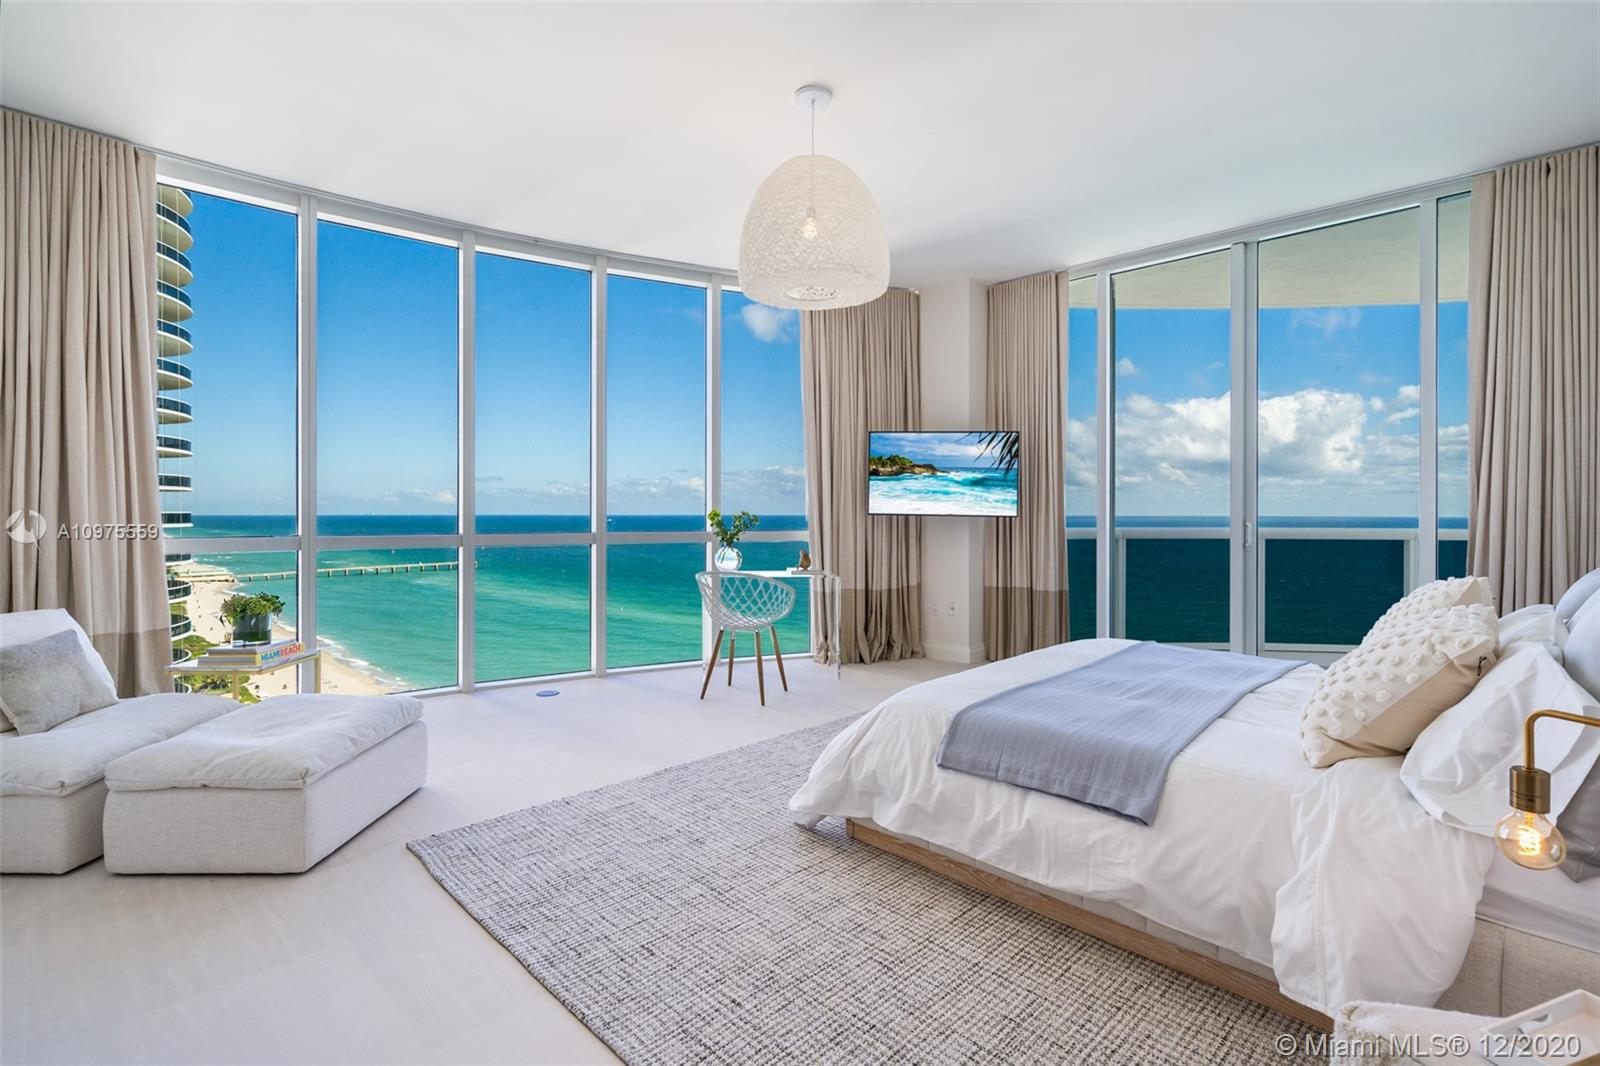 Details for 15901 Collins Ave  1601, Sunny Isles Beach, FL 33160